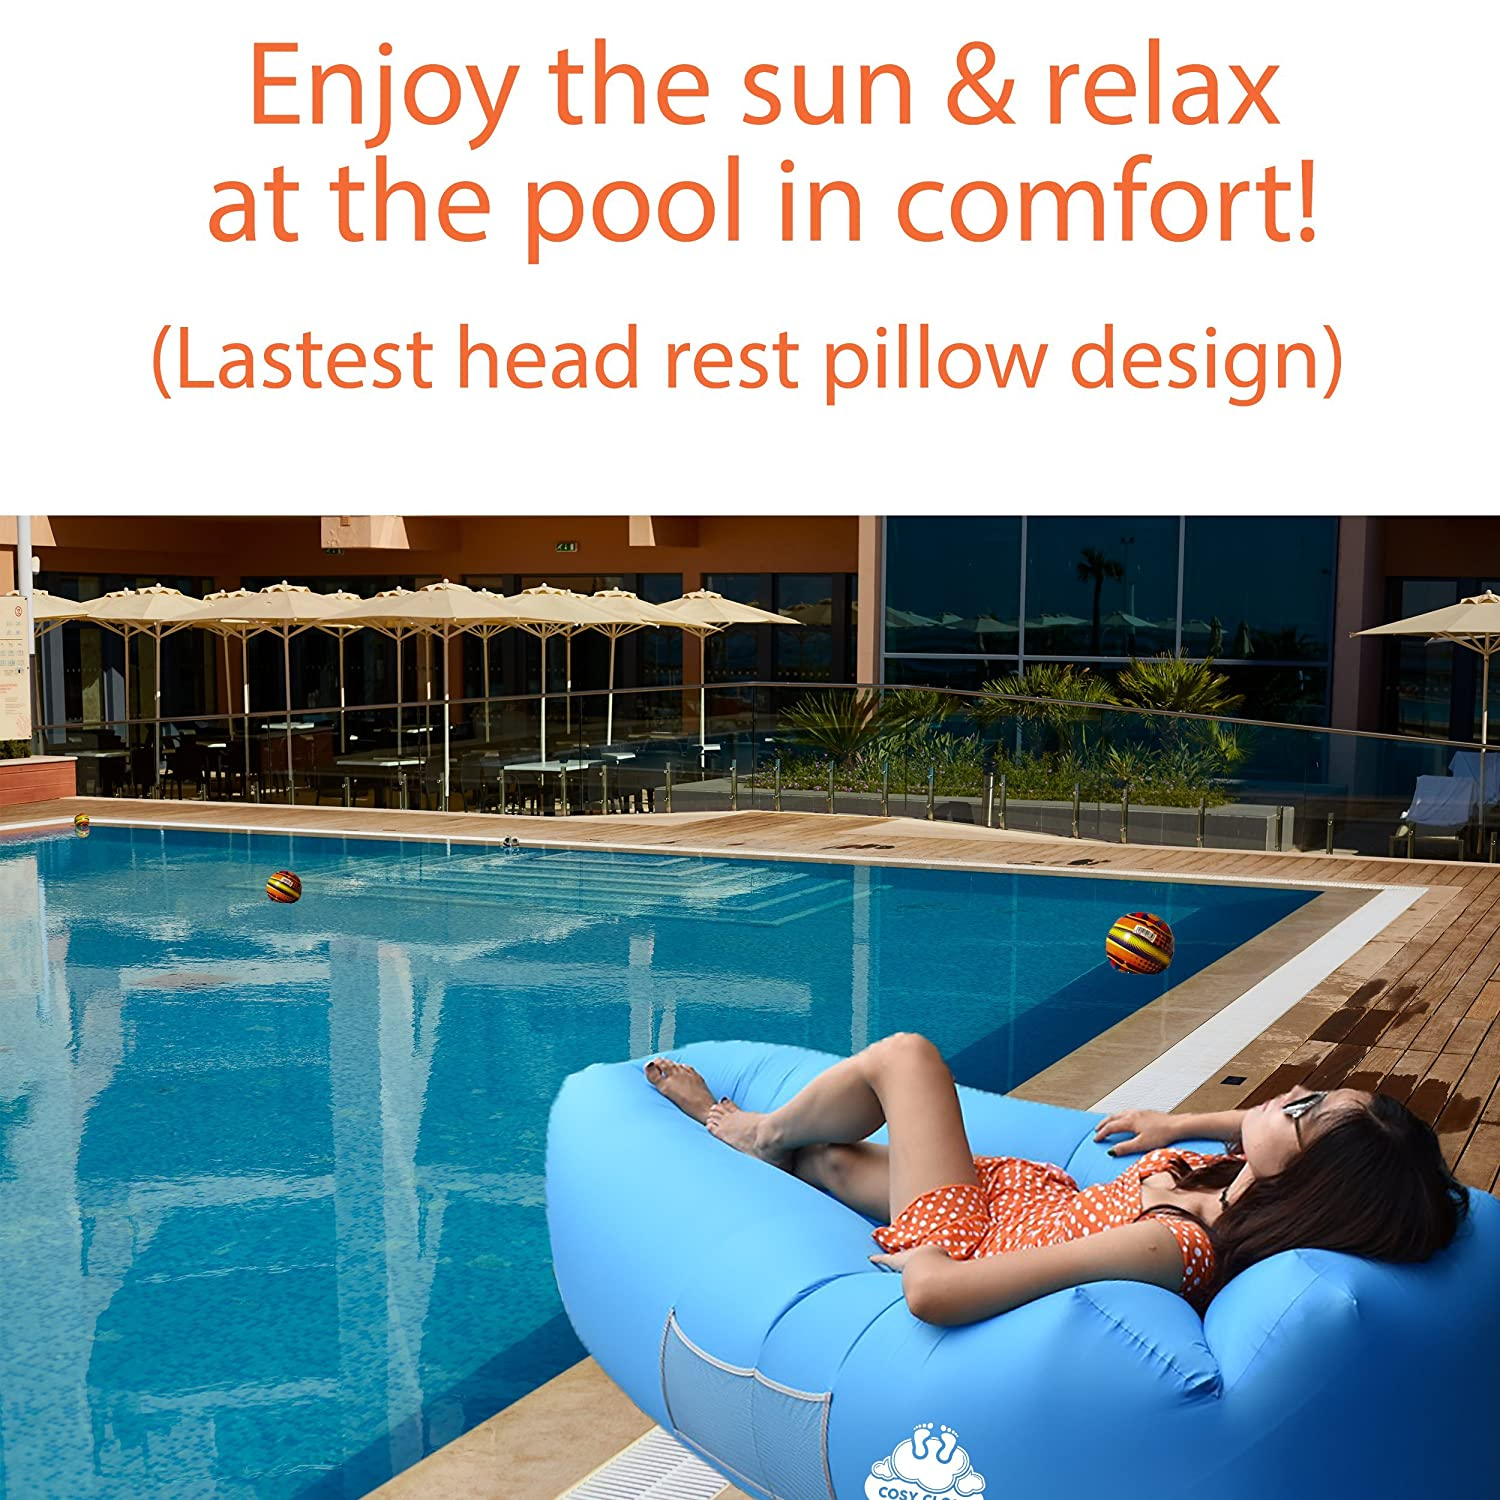 High Quality Inflatable Lounger Air Sofa Couch Bag   Portable Outdoor Furniture  Waterproof With Integrated Pillow   Blow Up Sun Beds Loungers For Pool  Beach Holiday ...